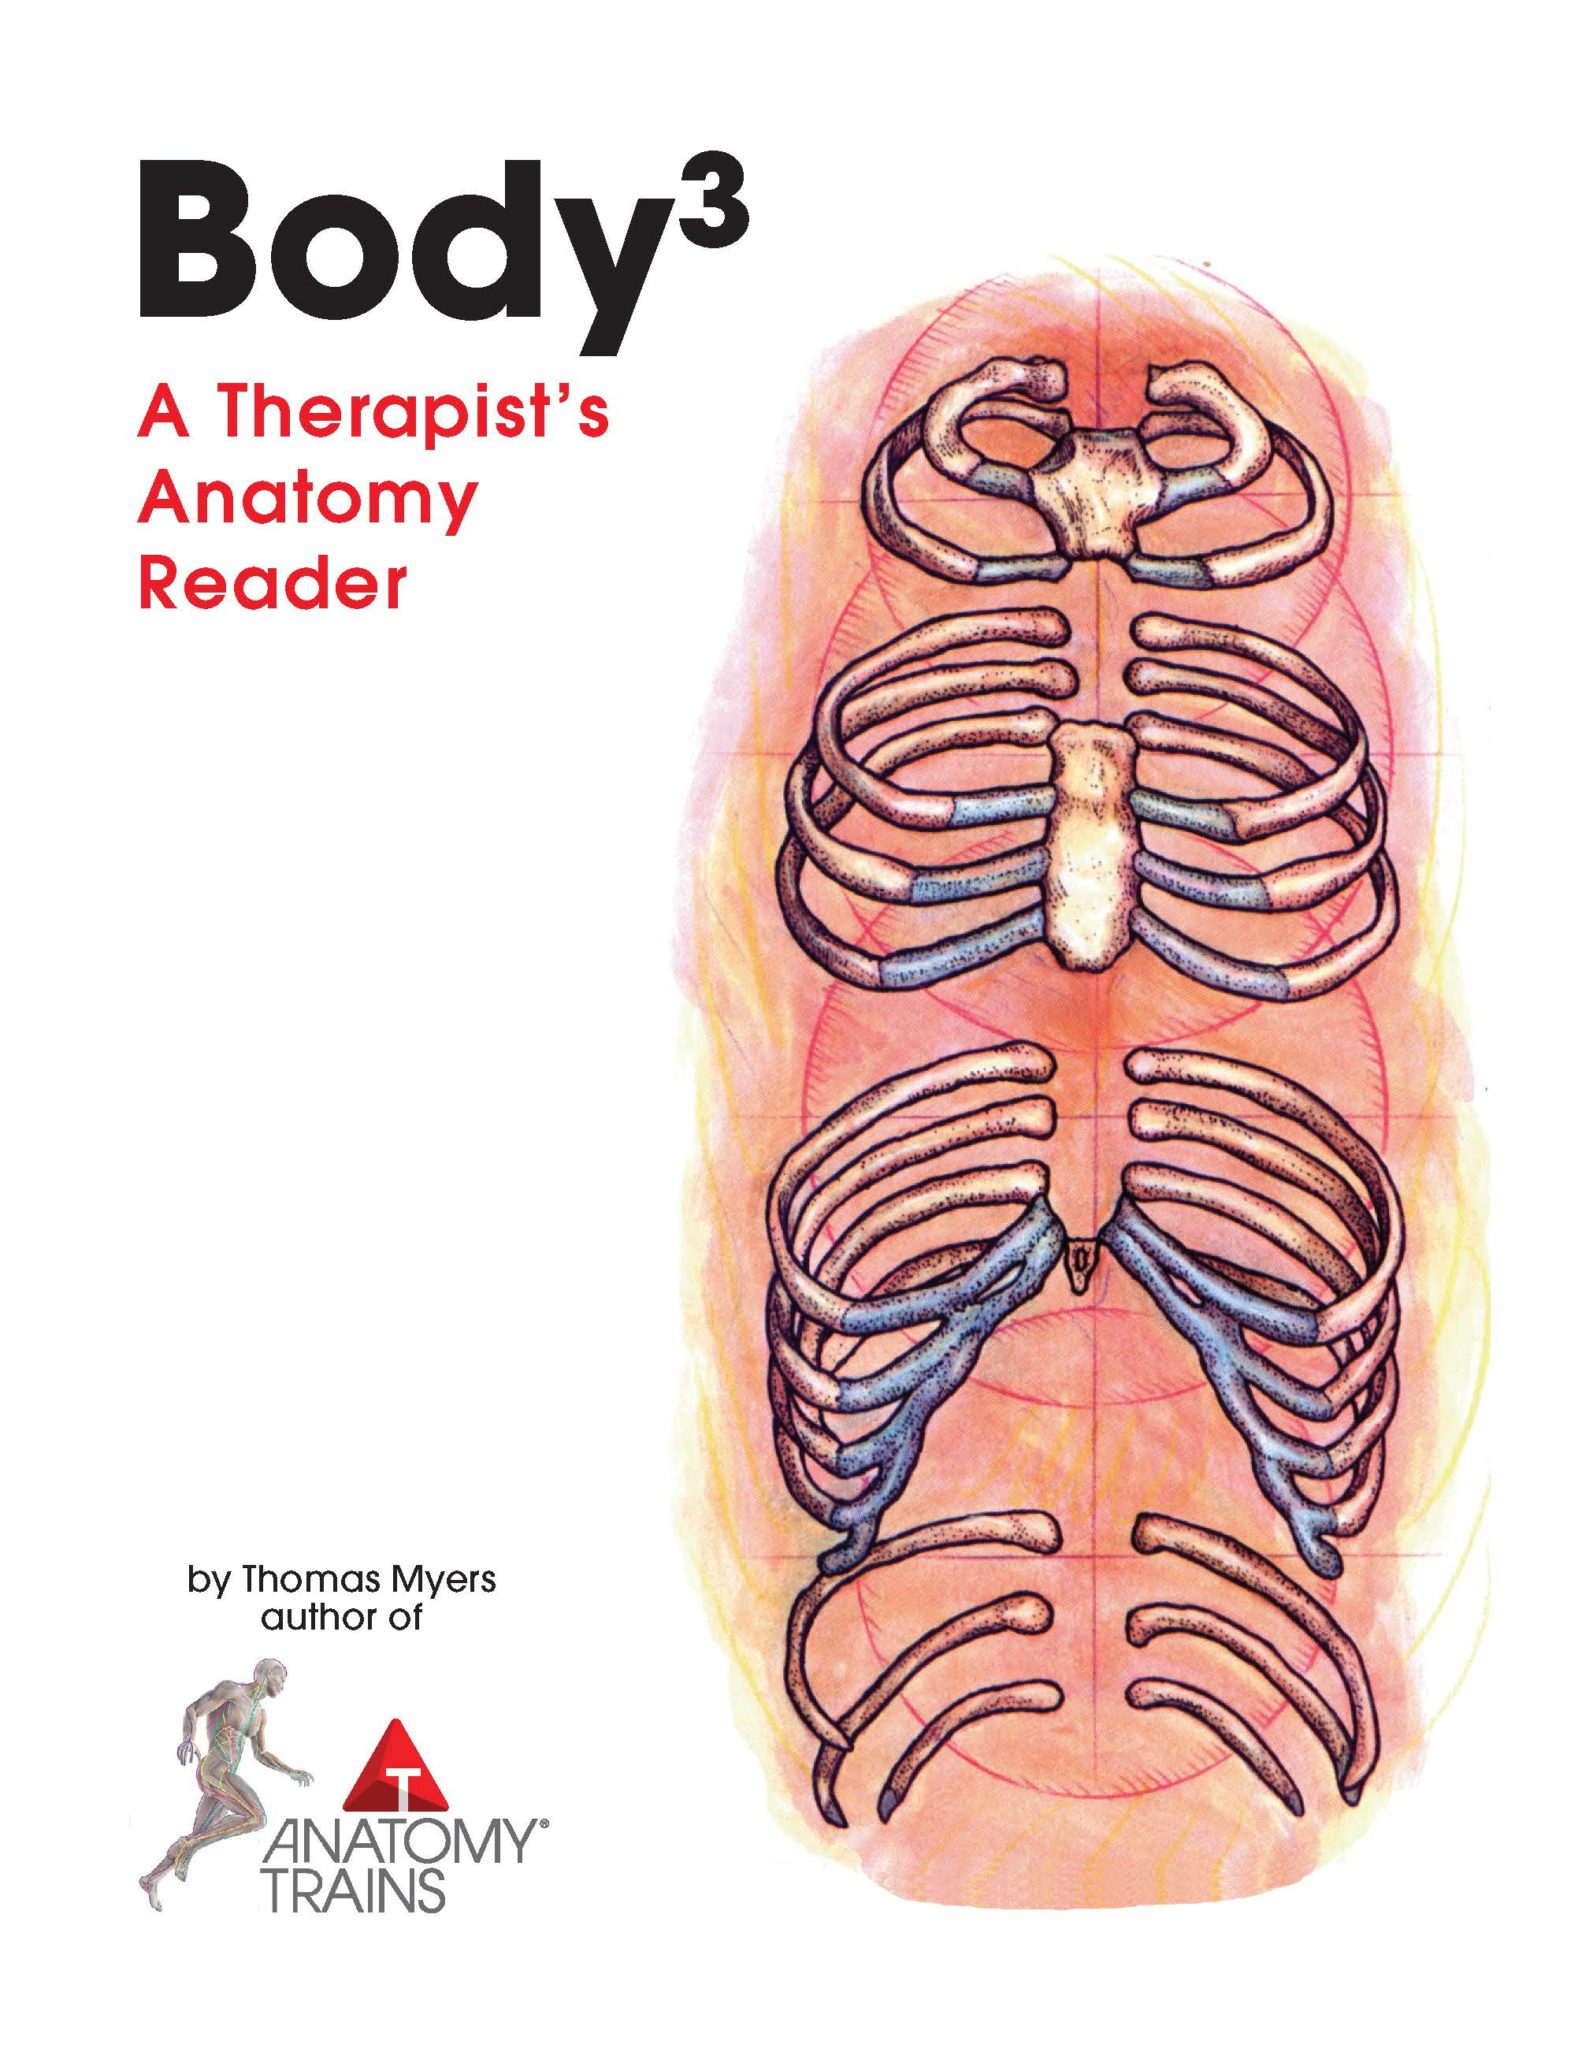 Bodyᶟ by Tom Myers - Structural Integration Training Book